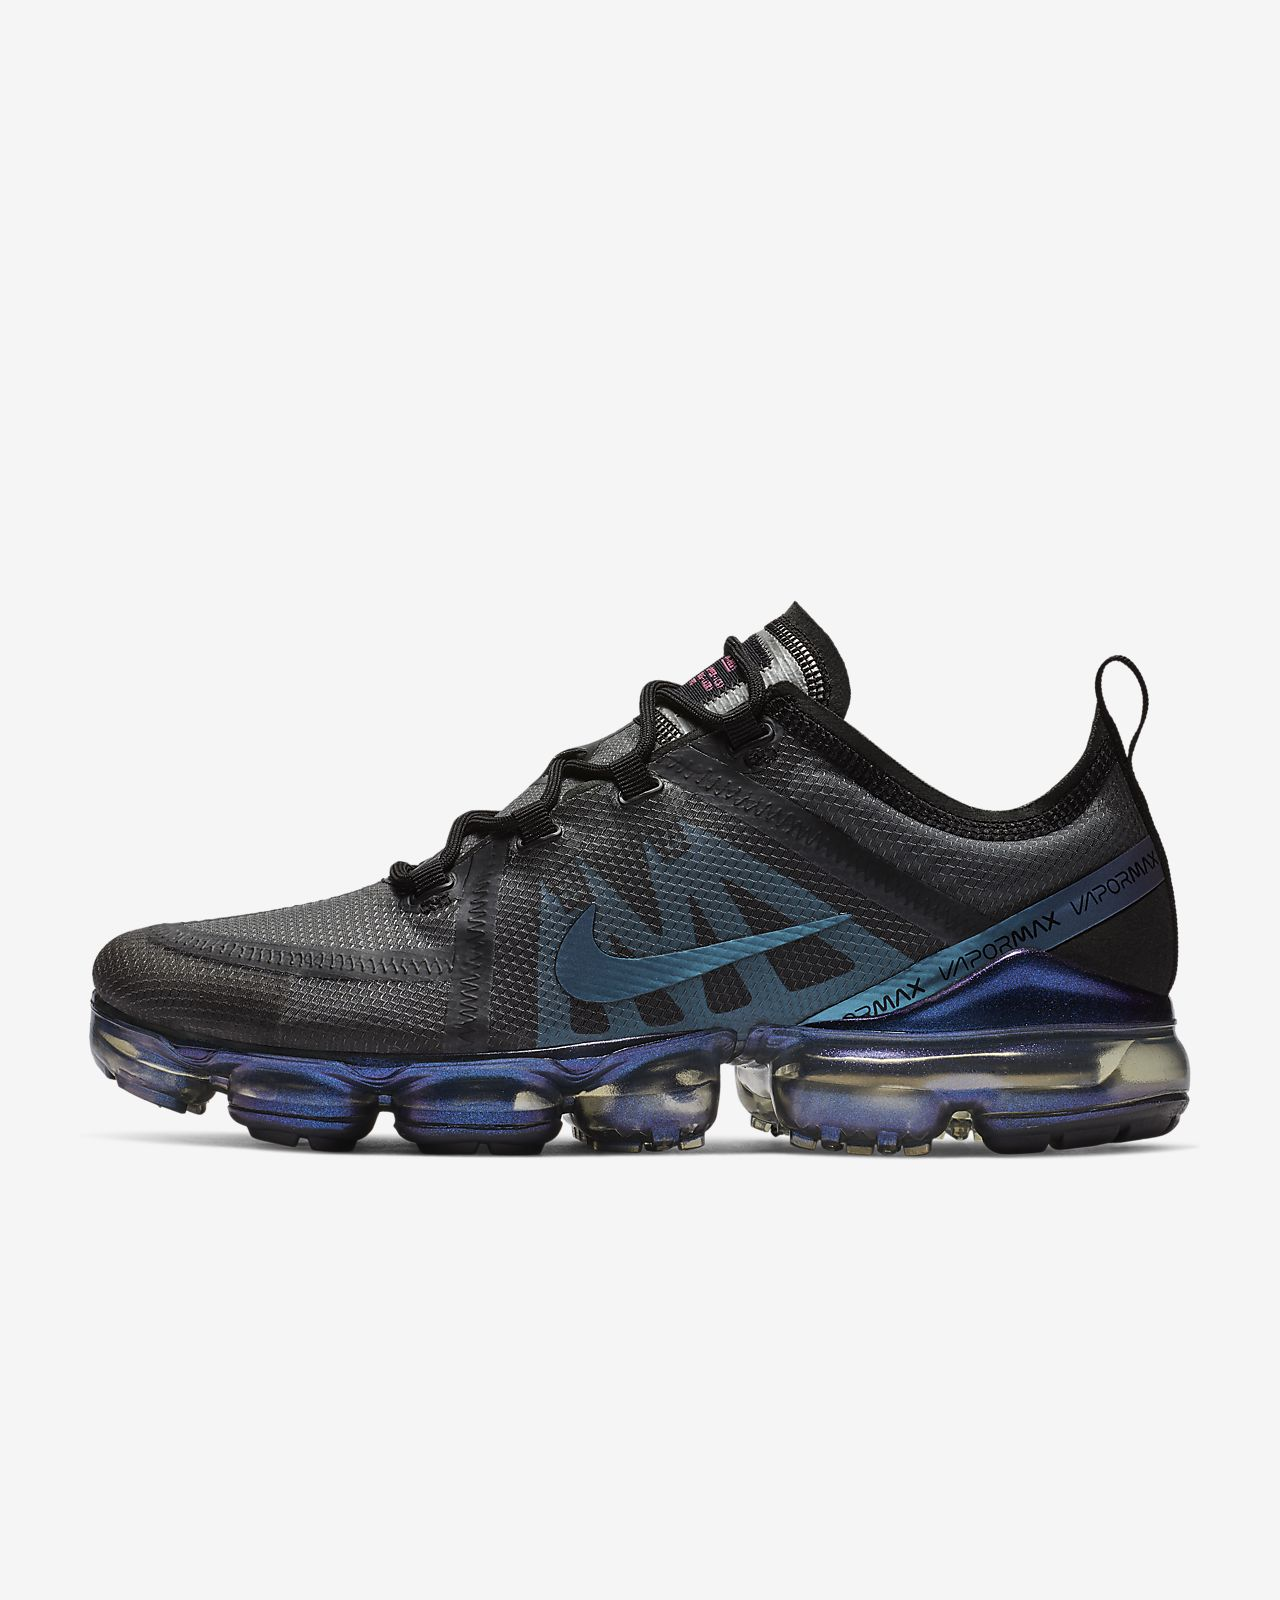 reputable site 22f9e 2daba Nike Air VaporMax 2019 Shoe